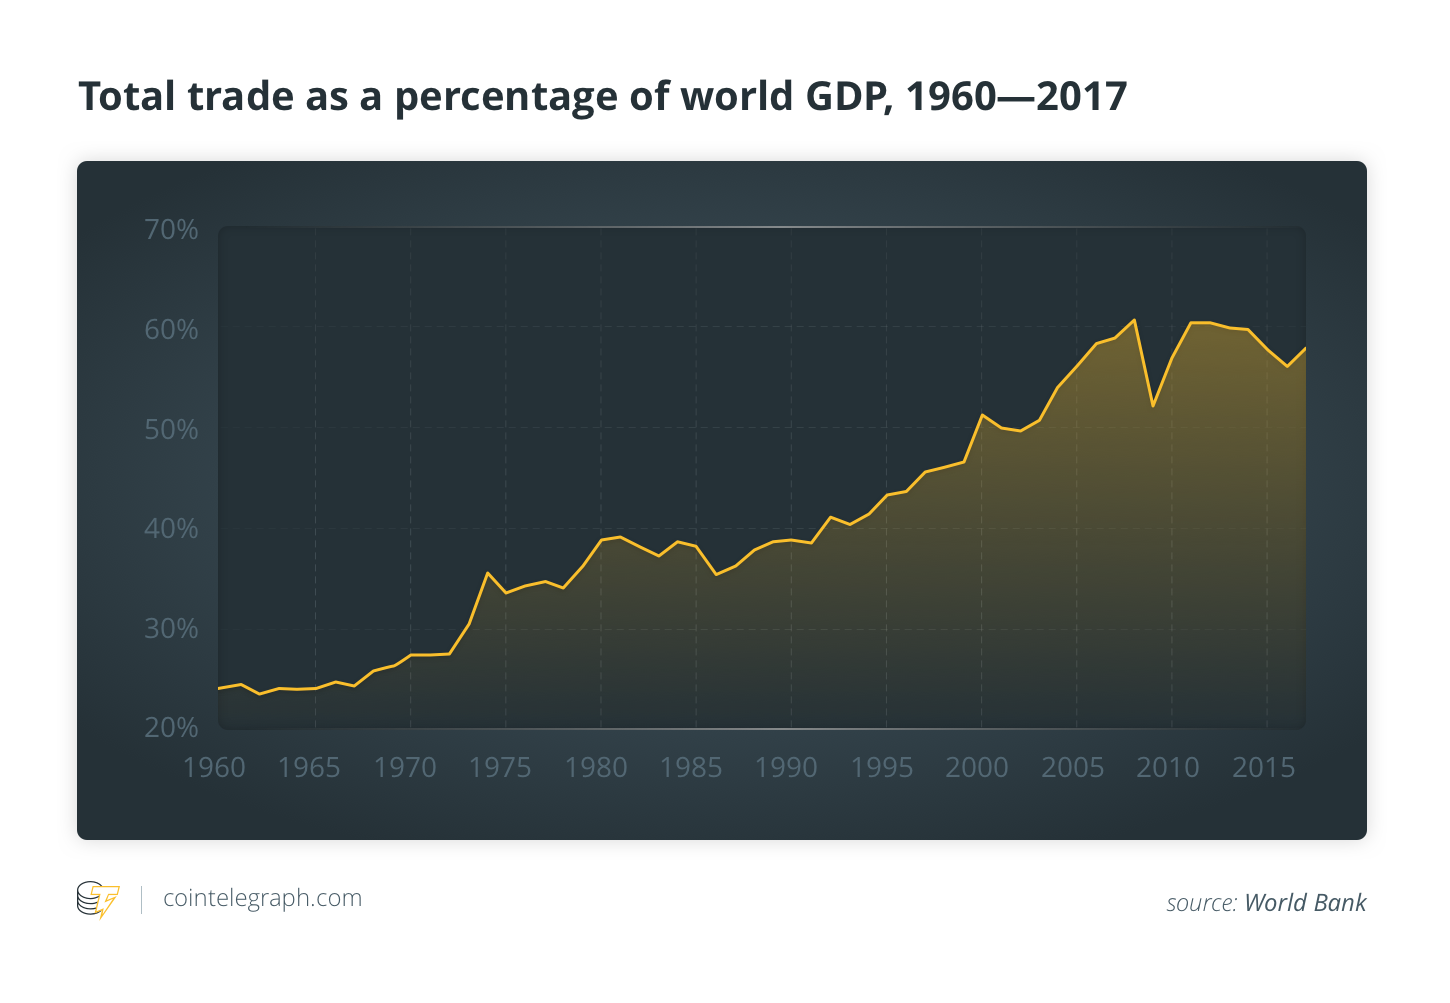 Total trade as a percentage of the world's GDP, 1960—2017